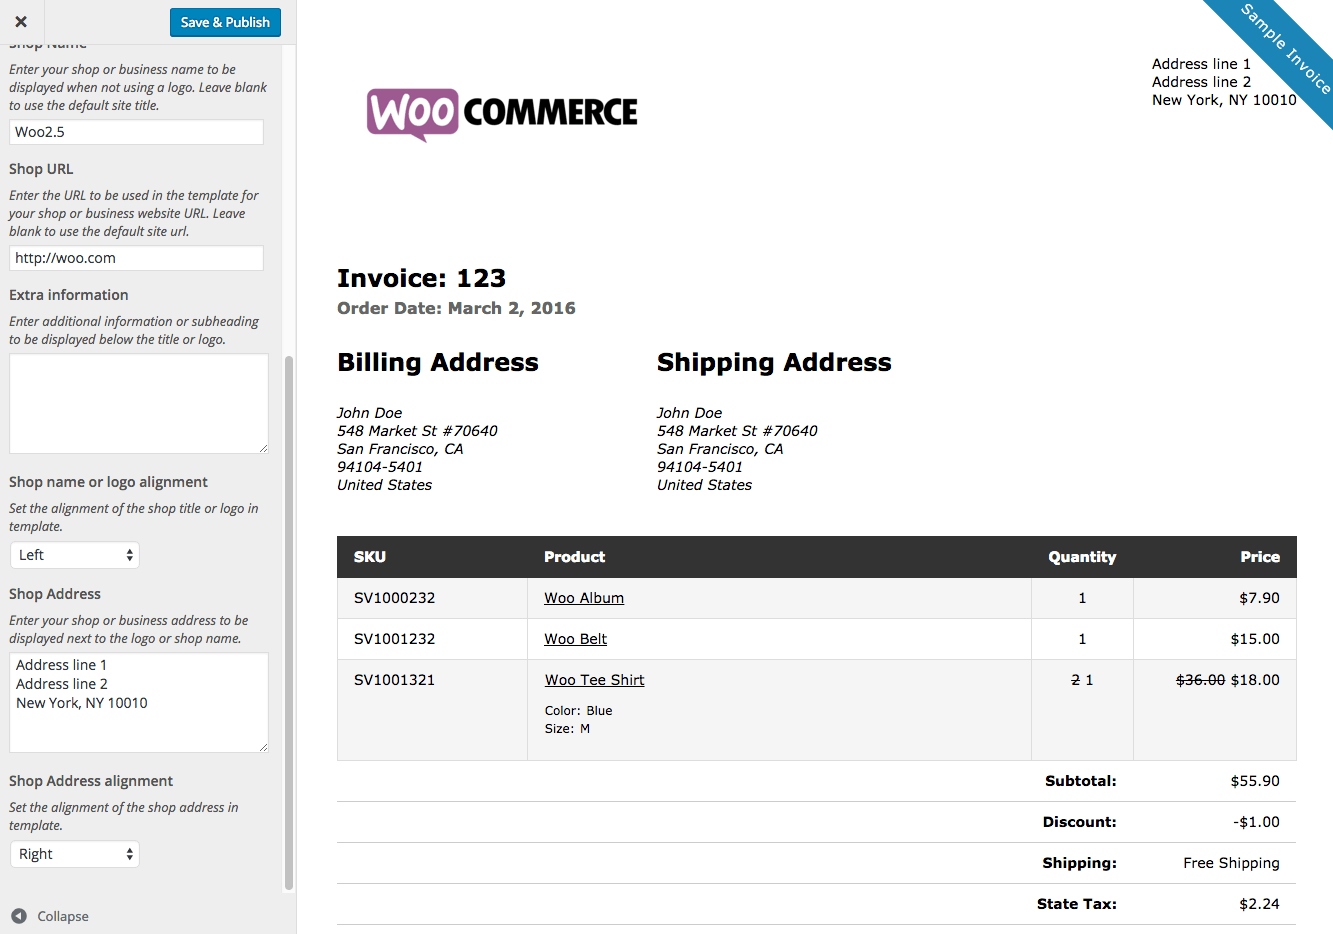 Reliefworkersus  Marvelous Woocommerce Print Invoices Amp Packing Lists  Woocommerce Docs With Luxury Woocommerce Print Invoices  Packing Lists Customizer With Nice Example Of Commercial Invoice For Export Also Office Depot Invoices In Addition Table For Invoice Document In Sap And Invoicing System Excel As Well As Rent Invoice Format In Word Additionally Download An Invoice Template From Docswoocommercecom With Reliefworkersus  Luxury Woocommerce Print Invoices Amp Packing Lists  Woocommerce Docs With Nice Woocommerce Print Invoices  Packing Lists Customizer And Marvelous Example Of Commercial Invoice For Export Also Office Depot Invoices In Addition Table For Invoice Document In Sap From Docswoocommercecom